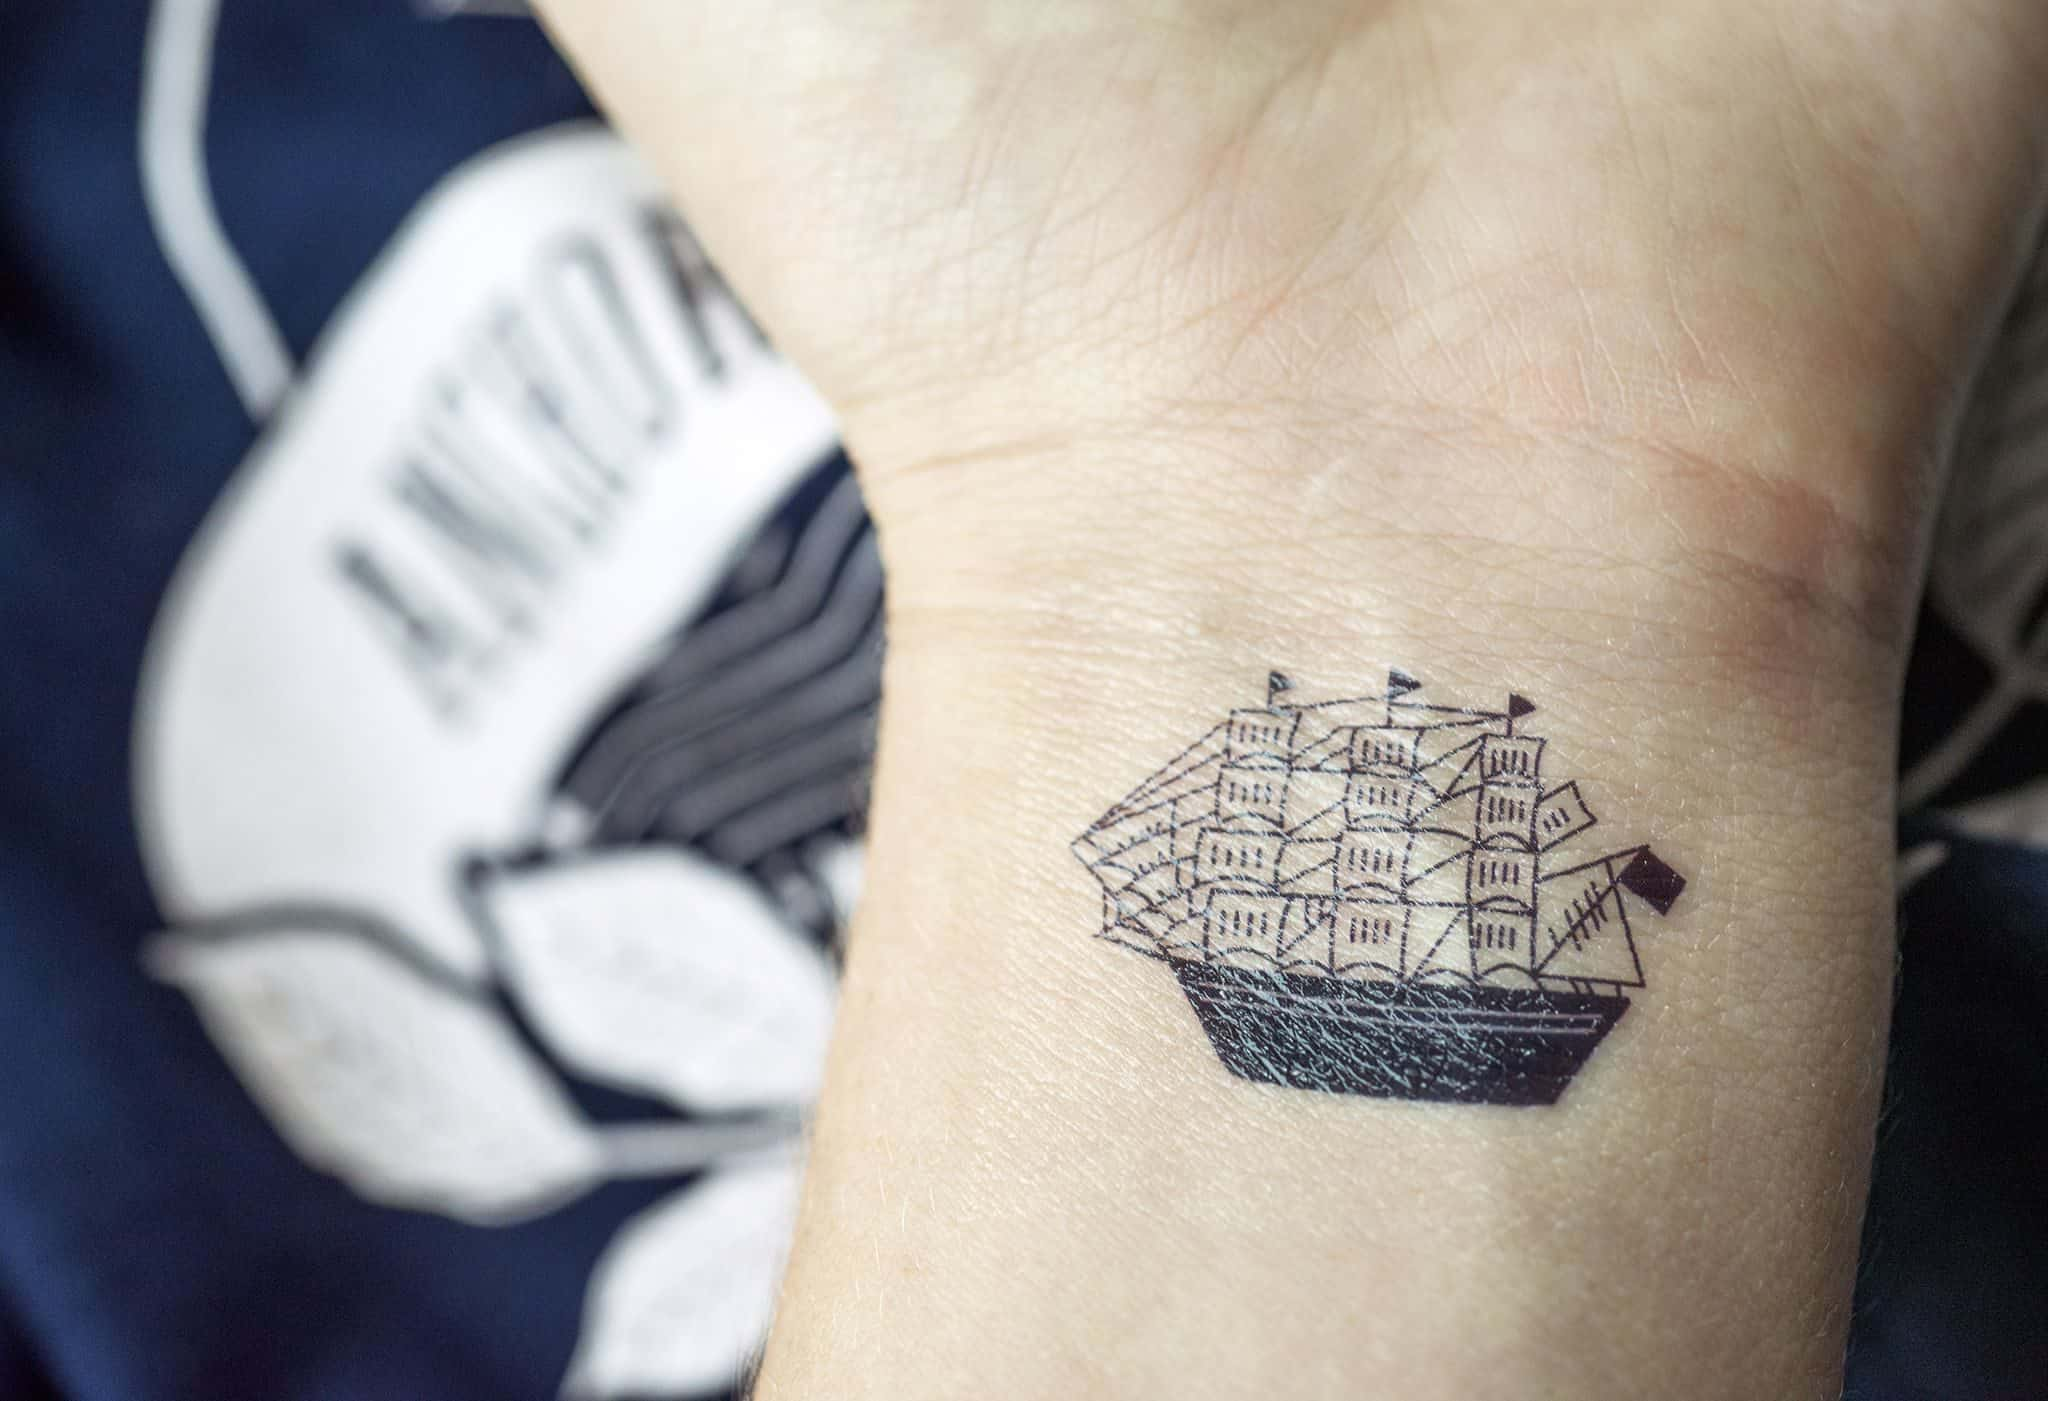 Tattly temporary tattoo for Amaya Roasting Co | Designed by Field of Study: A branding and graphic design consultancy | Houston TX | Jennifer Blanco & John Earles